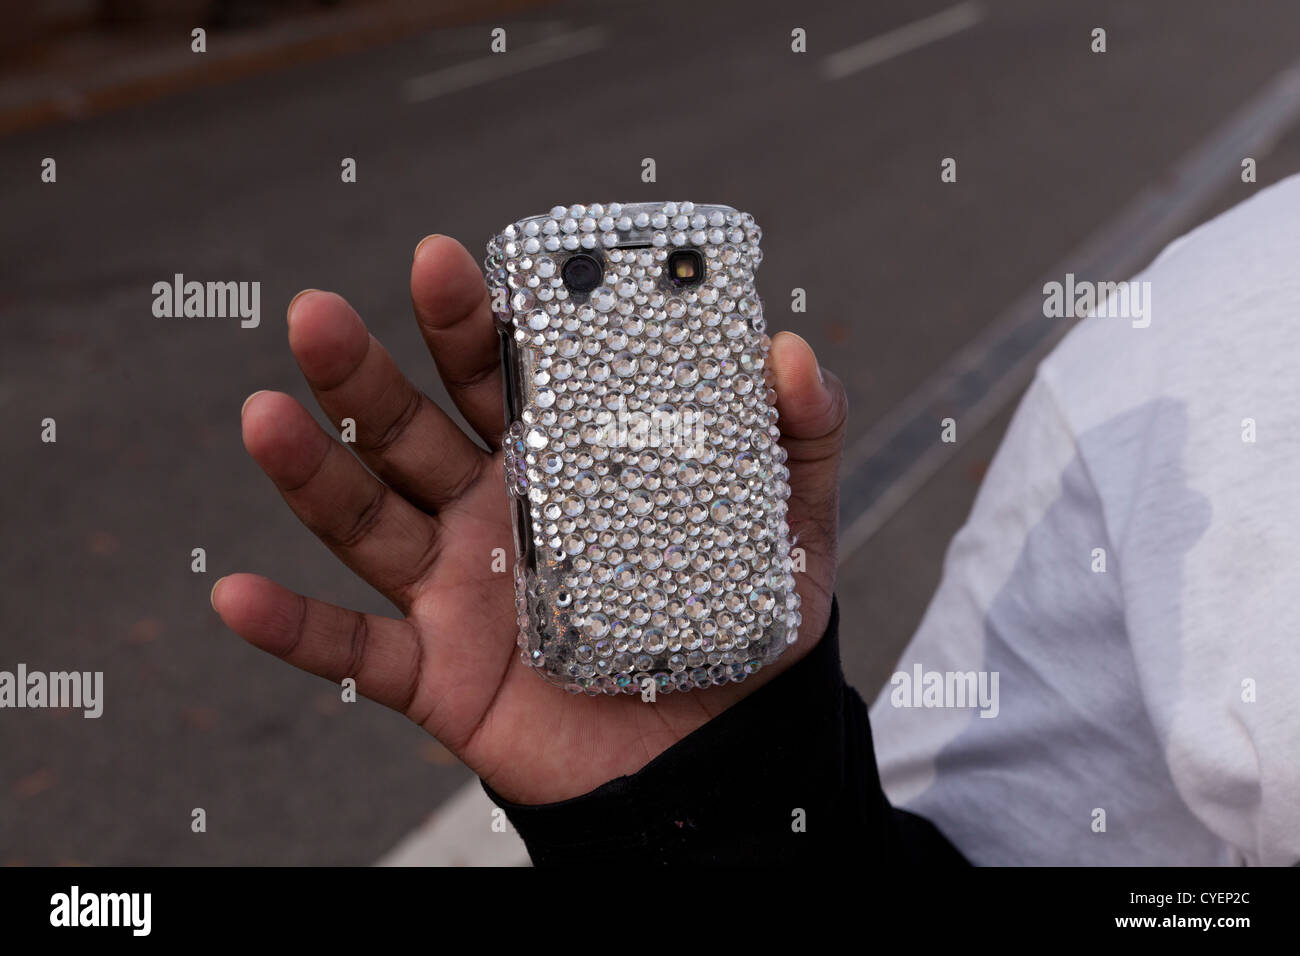 Woman holding cellphone lined with acrylic beads - Stock Image